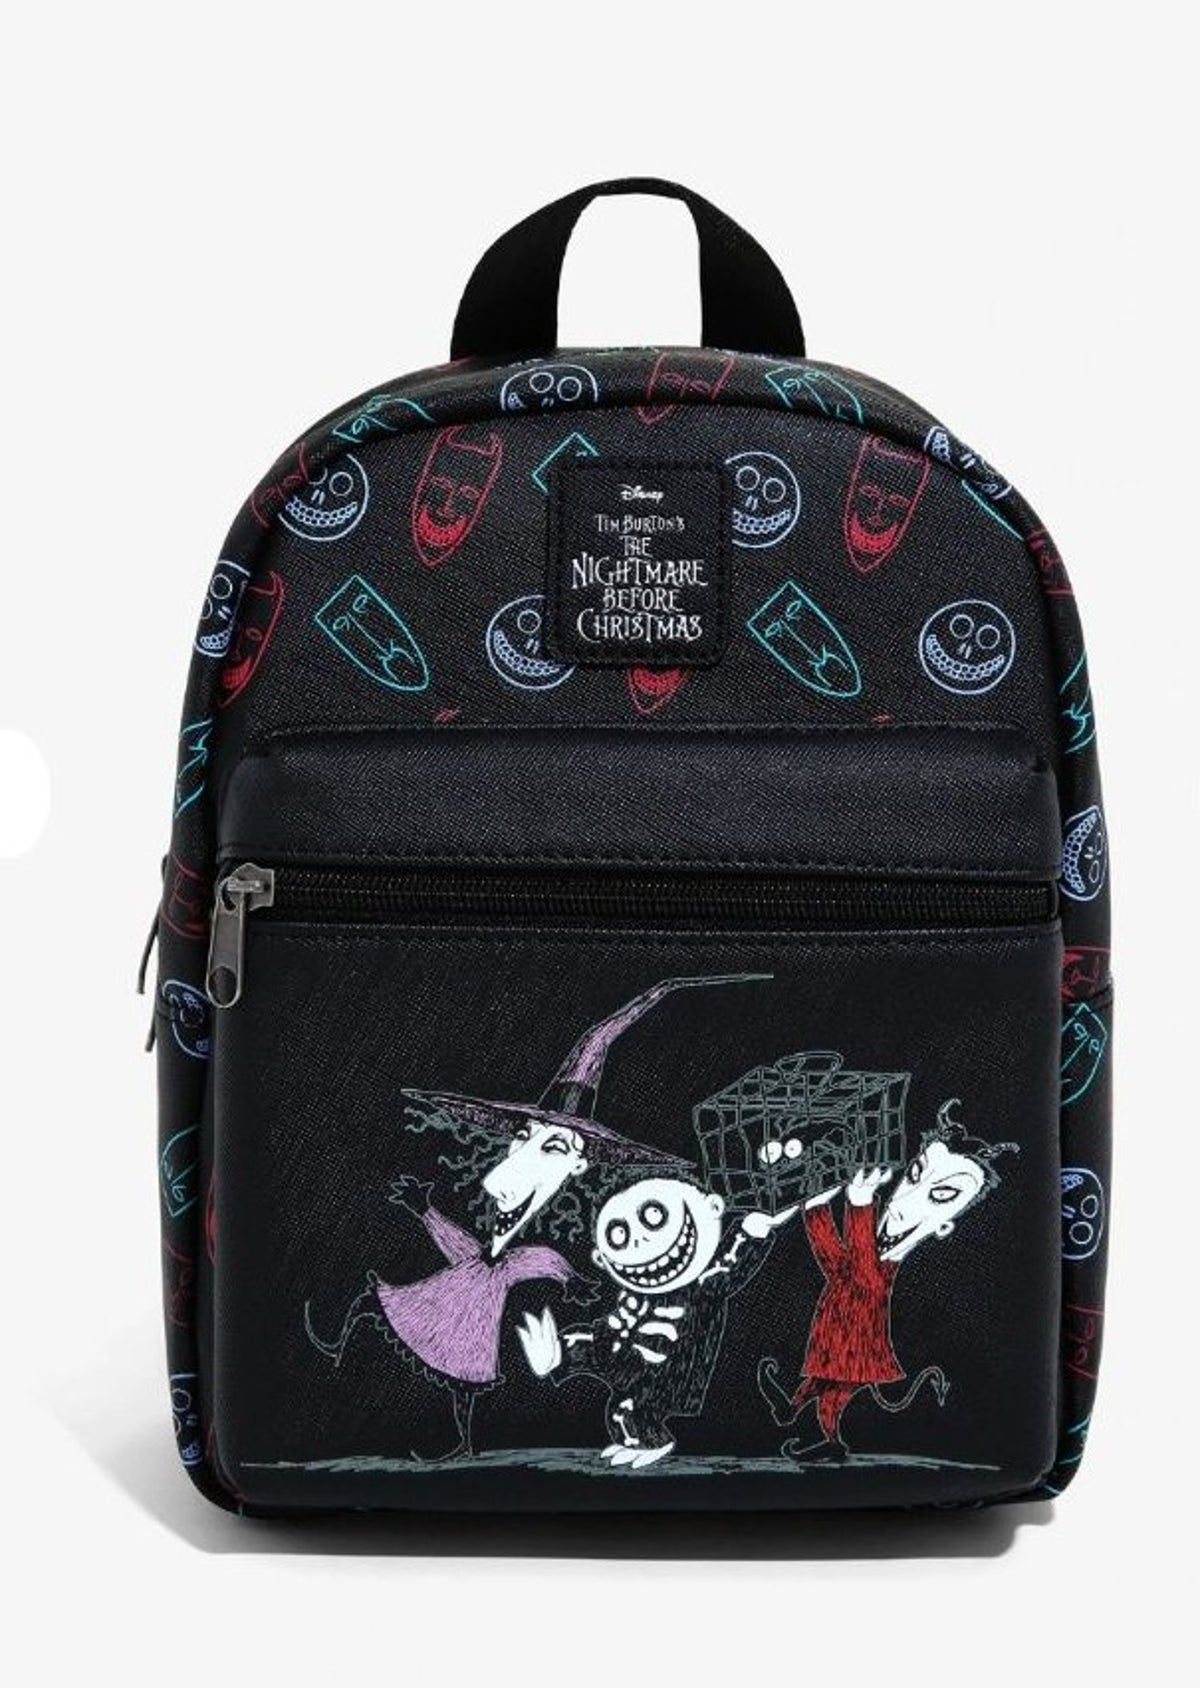 Pin By Ted Nel On Coraline In 2020 Mini Backpack Cute Mini Backpacks Loungefly Bag